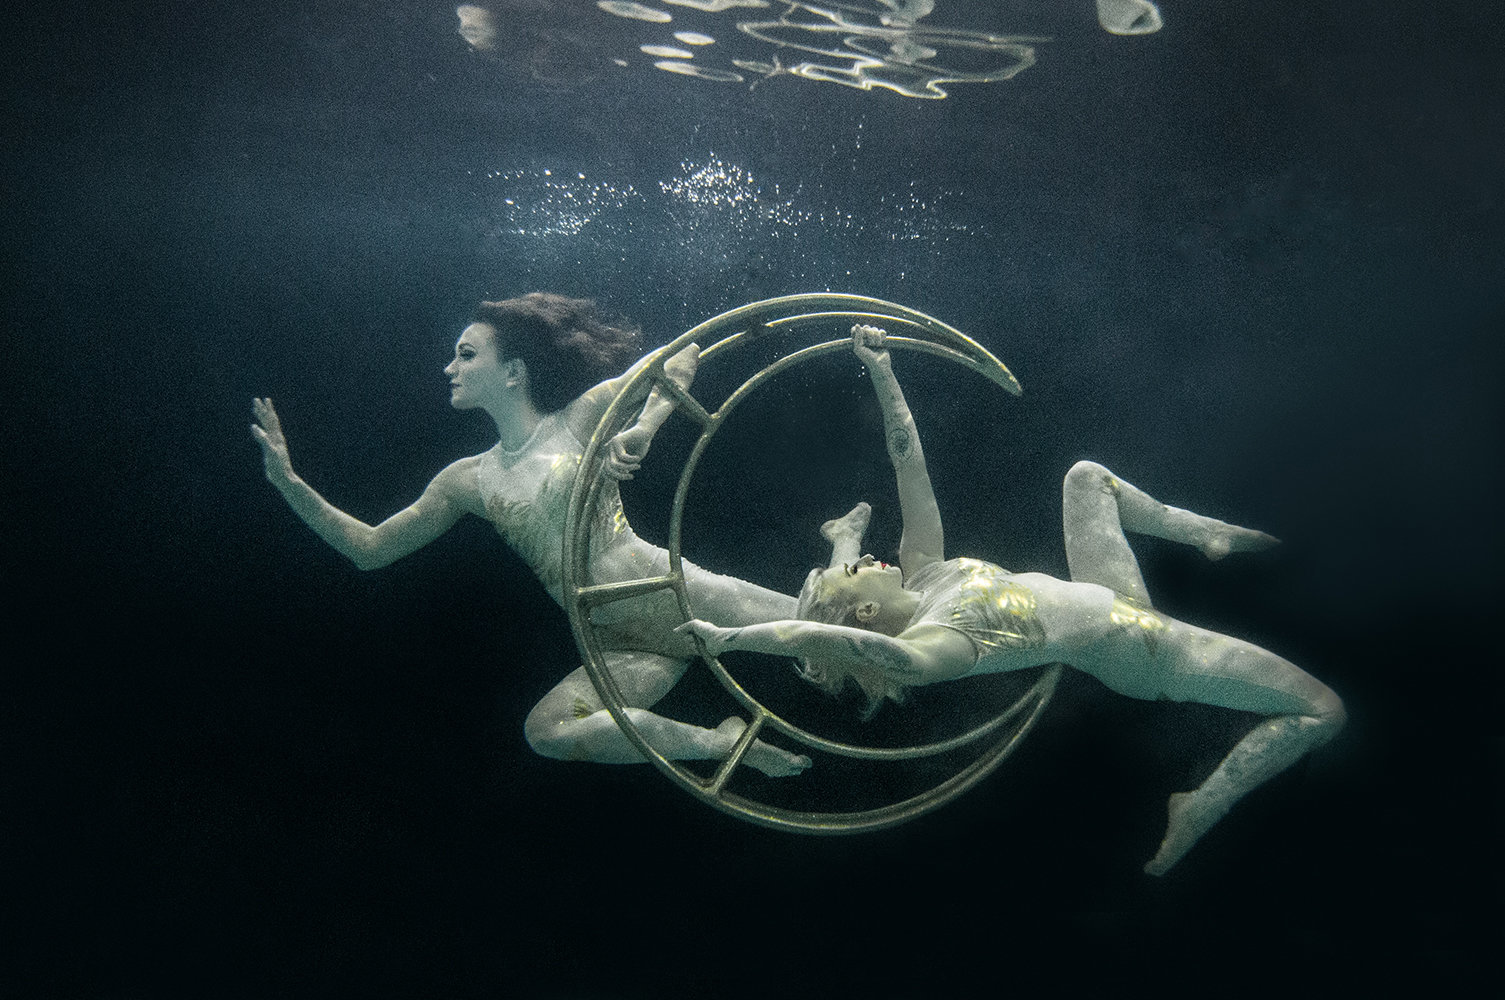 underwater-photography-aerial-dance-denver-fine-art-portrait-melissa-mullins